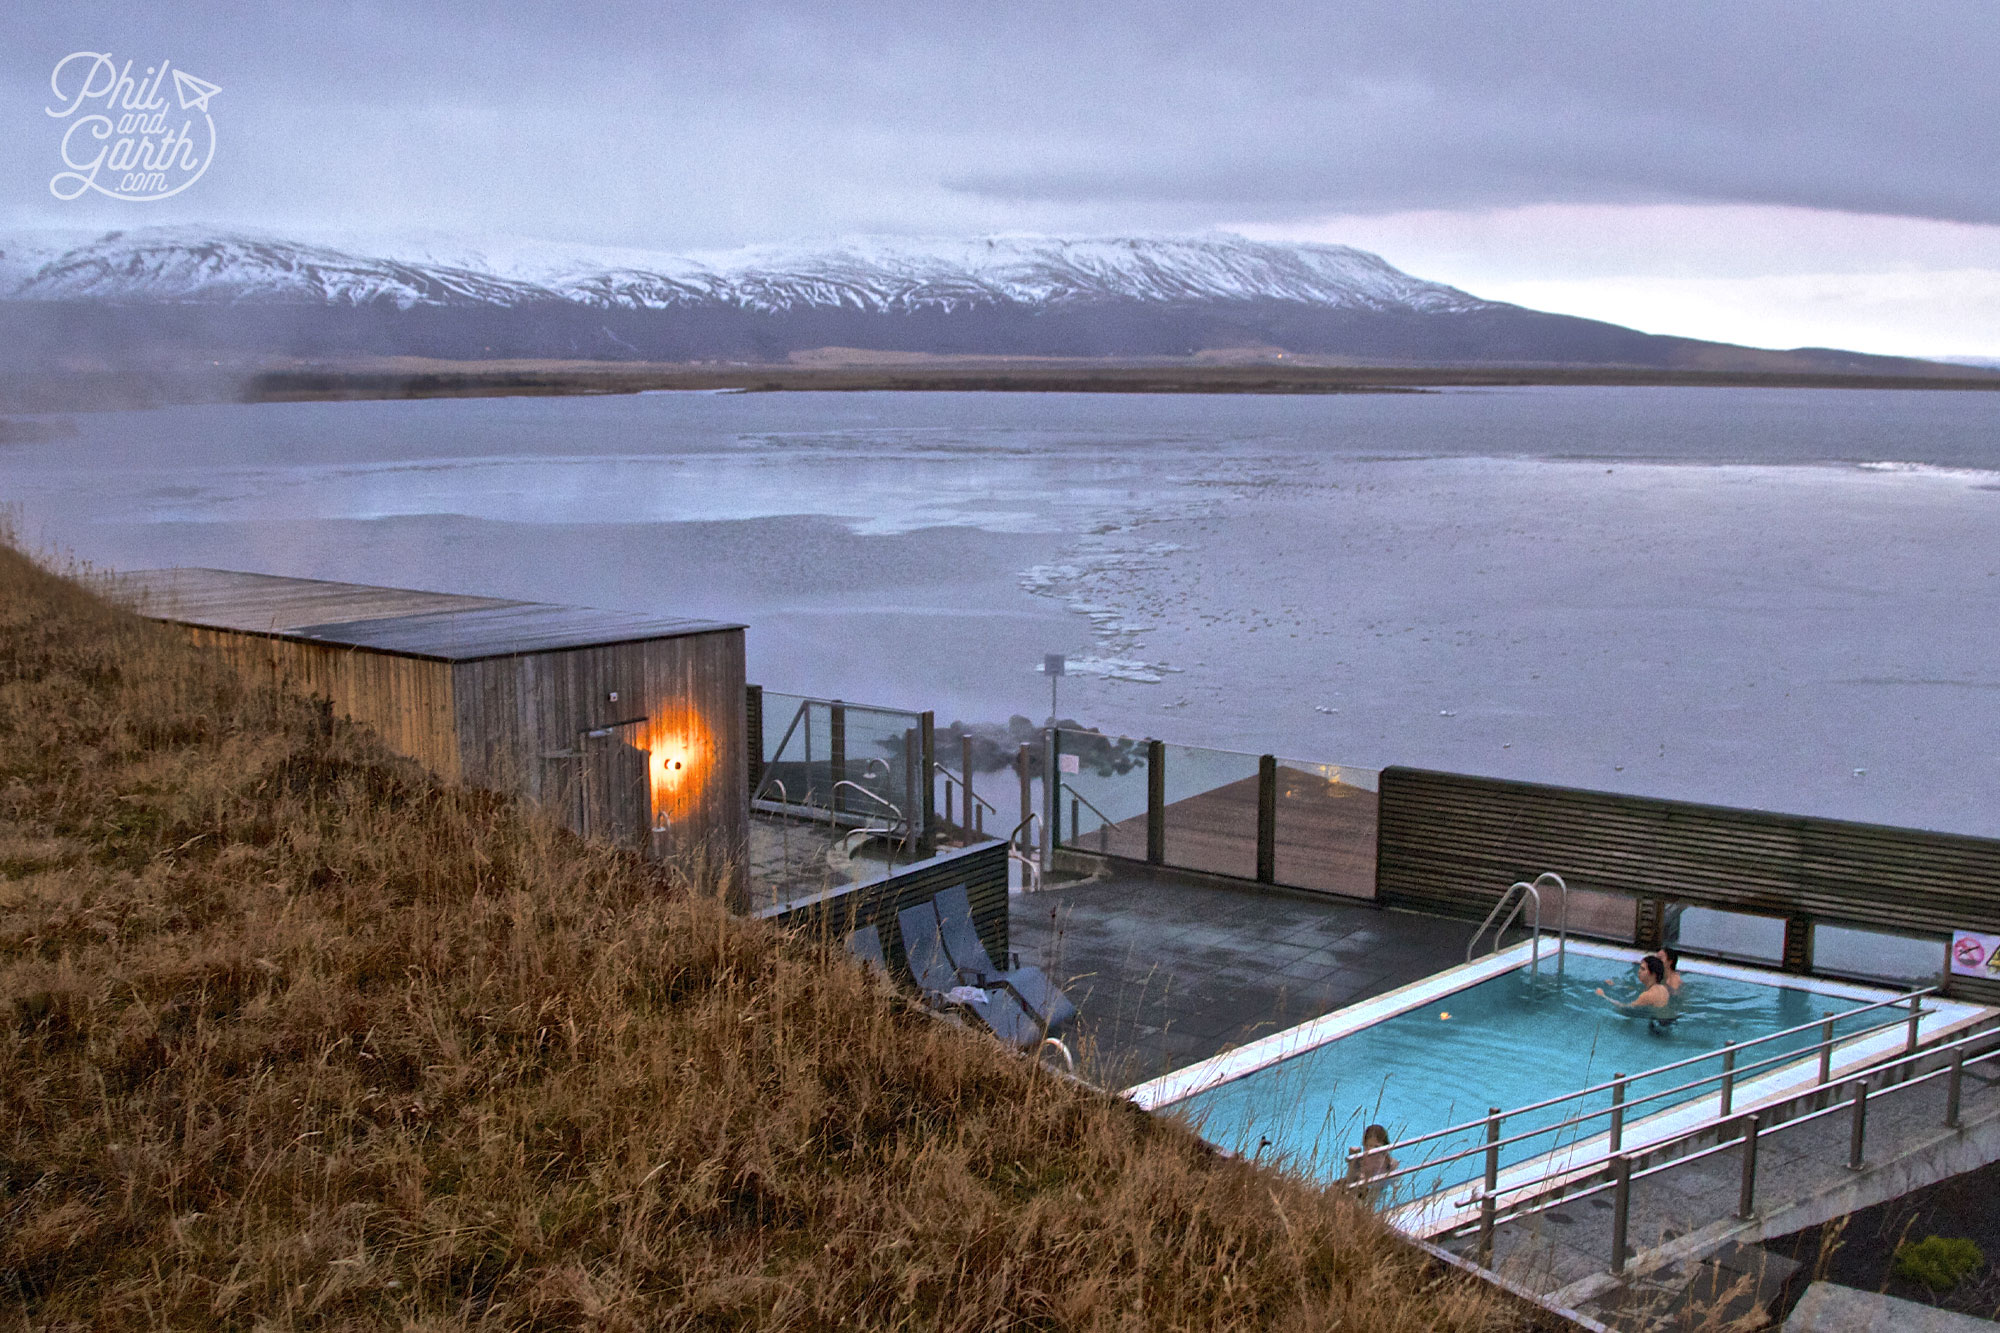 The Best Places To Travel By Month - January for Iceland's dramatic scenery - the backdrop at the Laugarvatn Fontana Spa